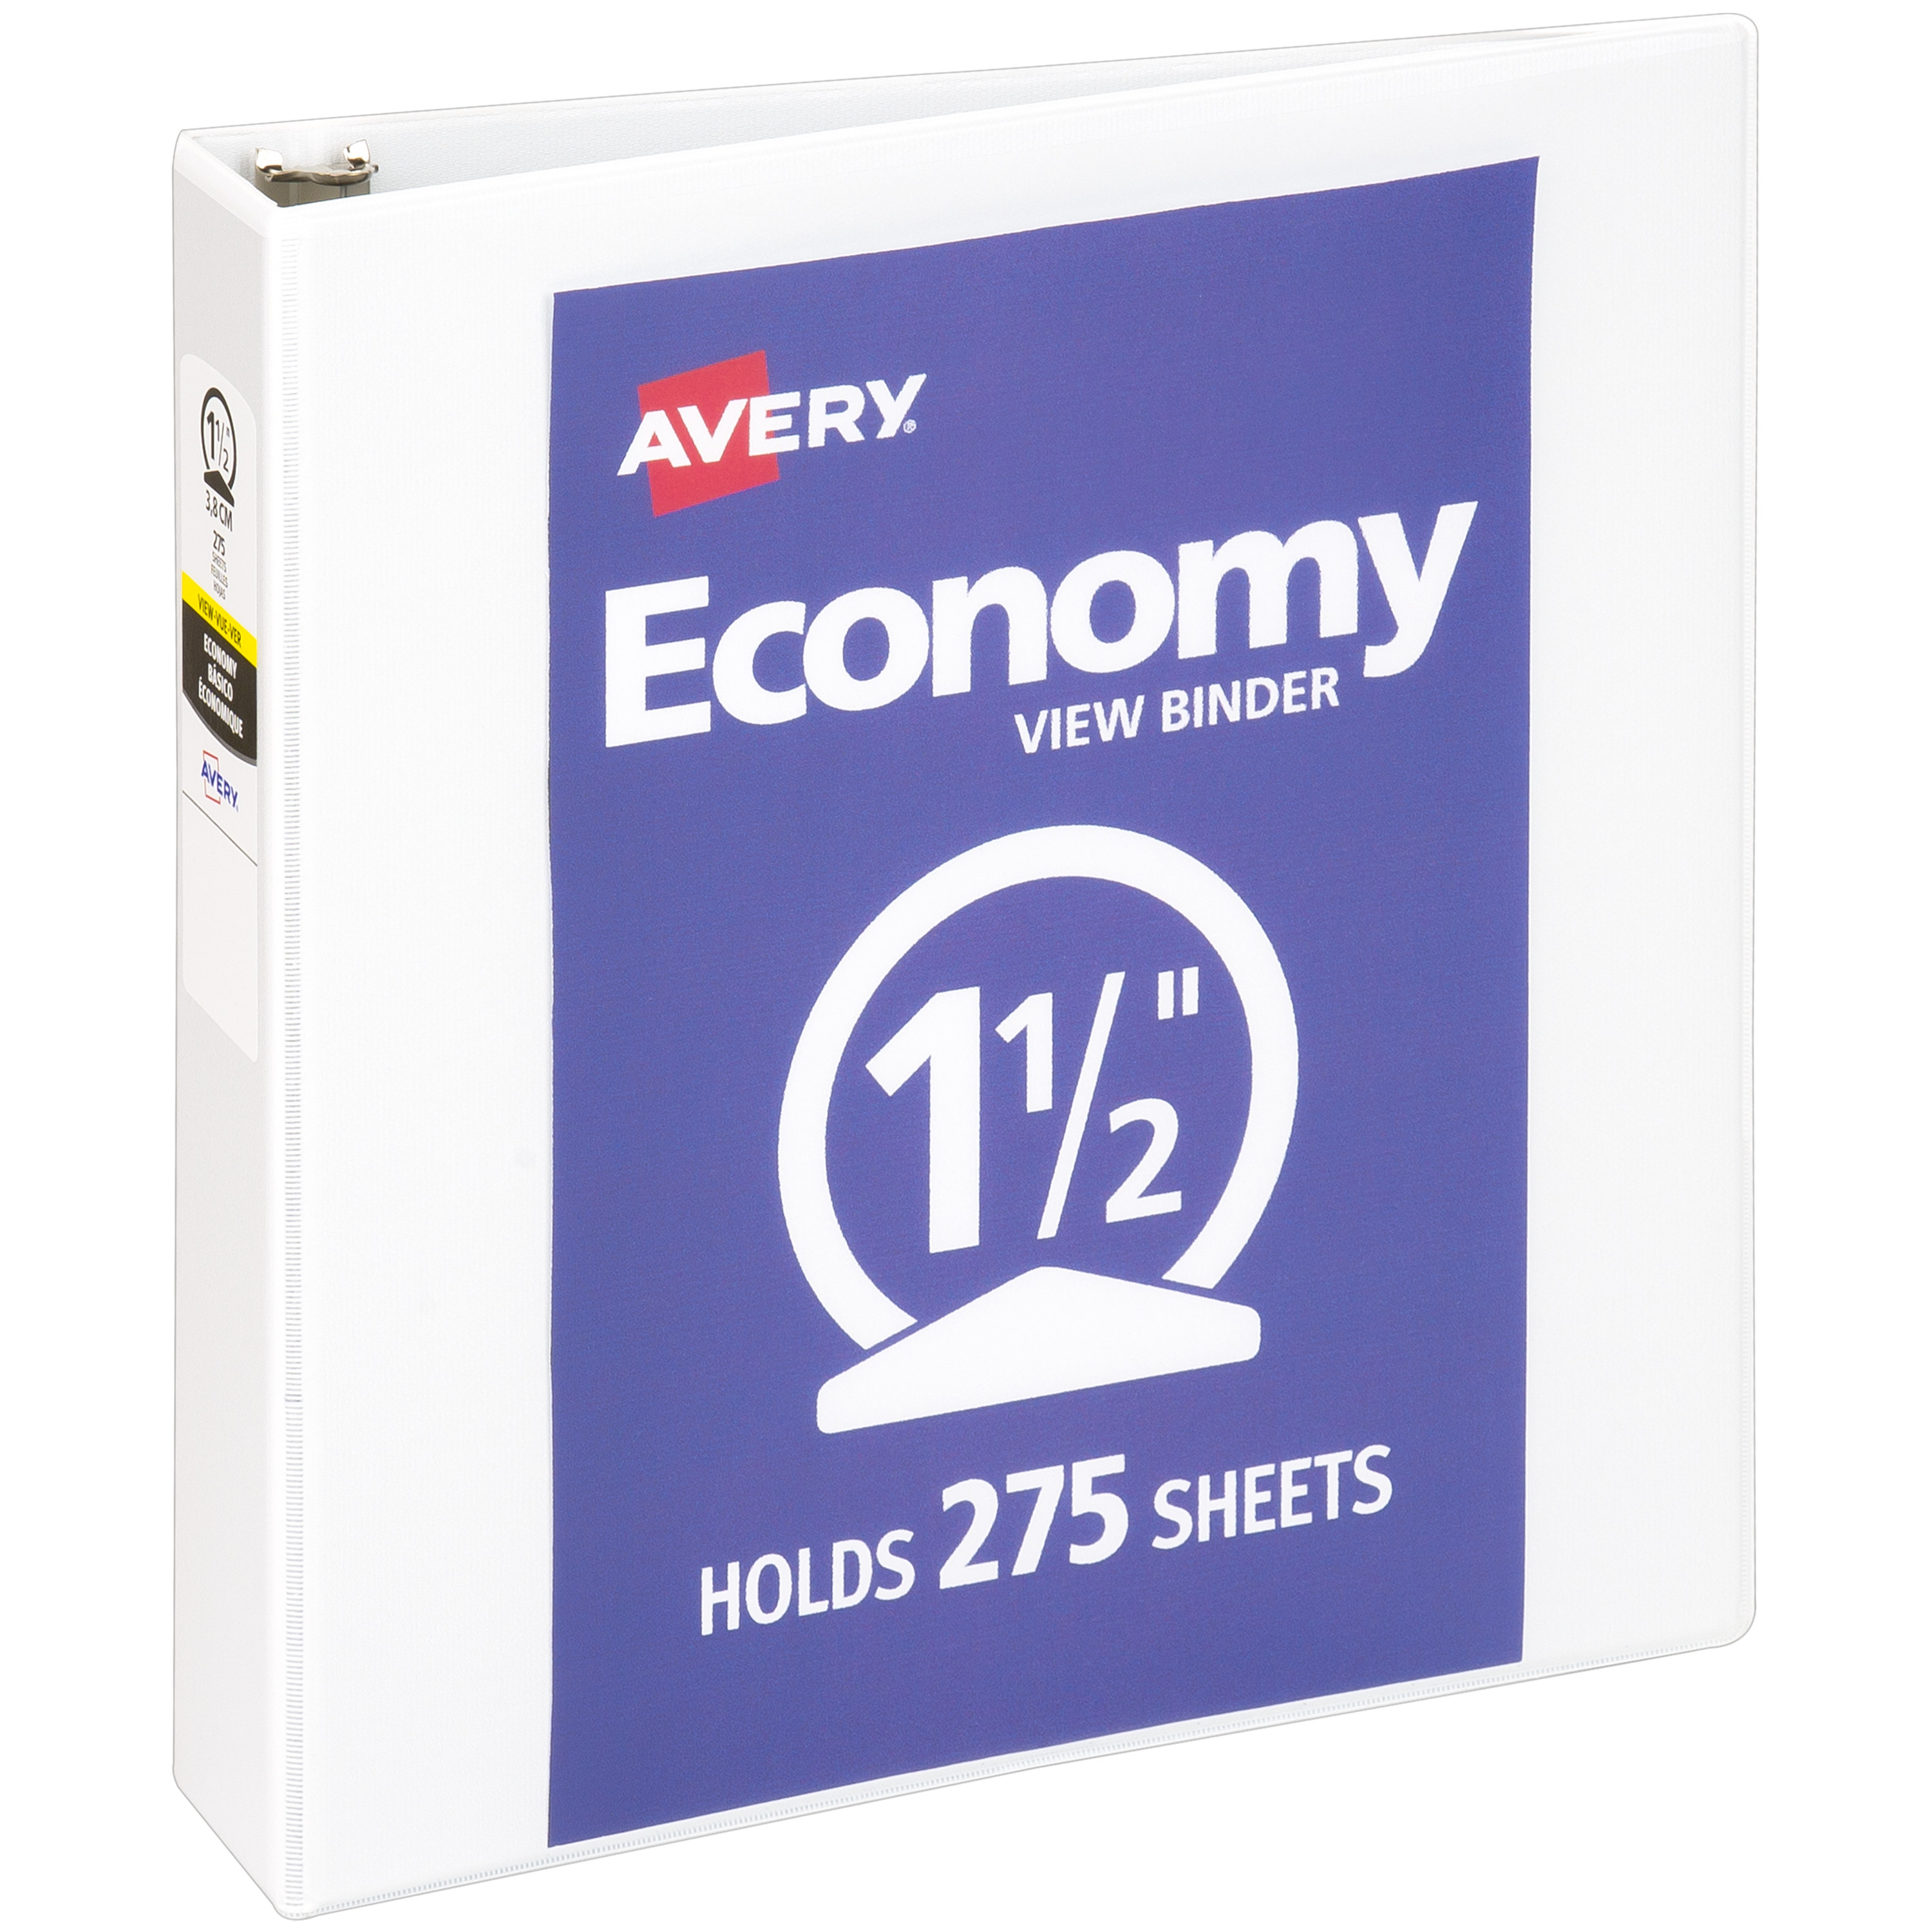 "Avery 1-1/2"" Economy View Binder, Round Rings, White, 275 Sheets"